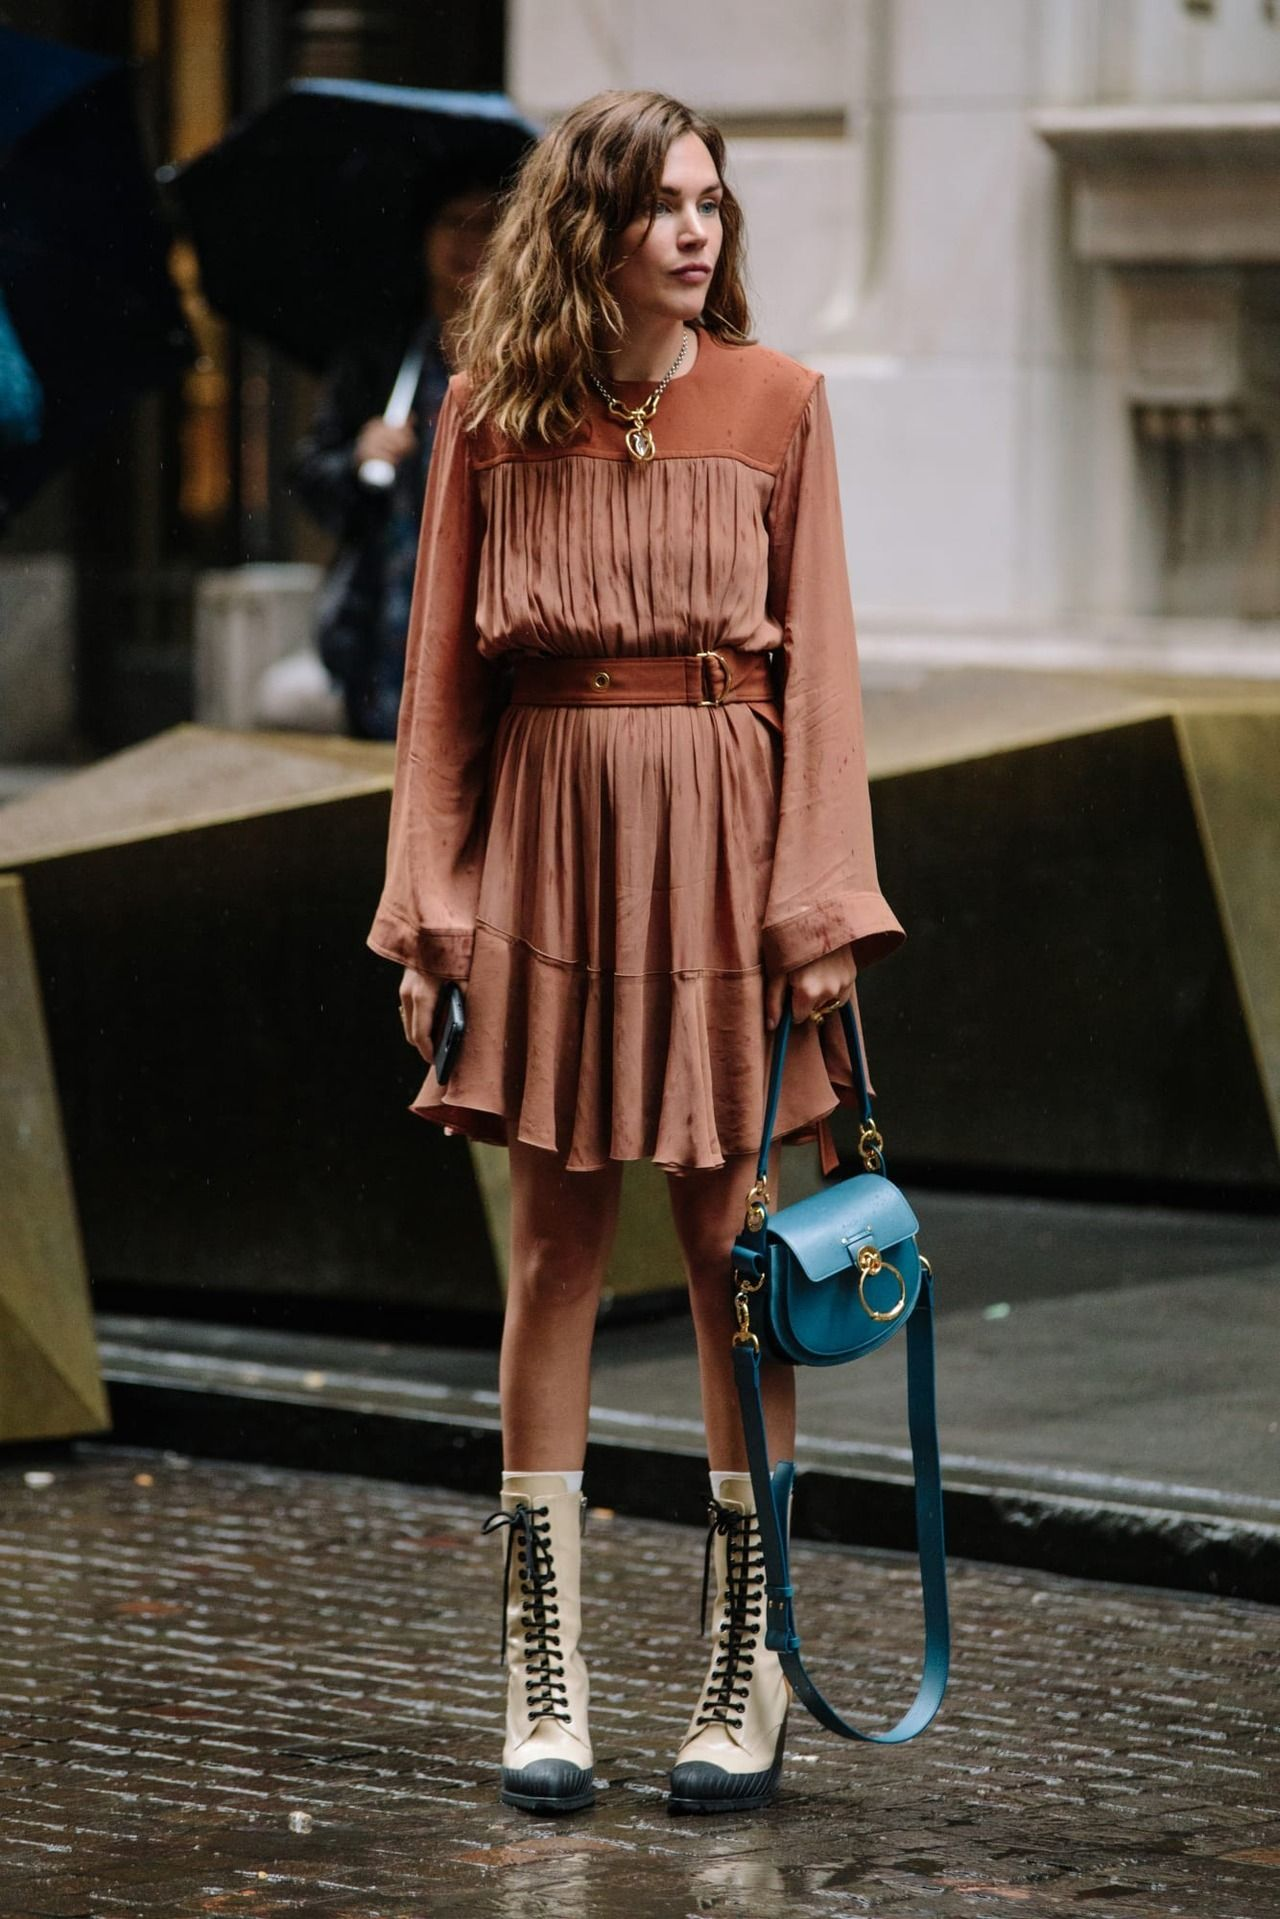 pictures 15 Spring Street Style Outfits From New York: Slip-On Sneakers, Faded Denim,More